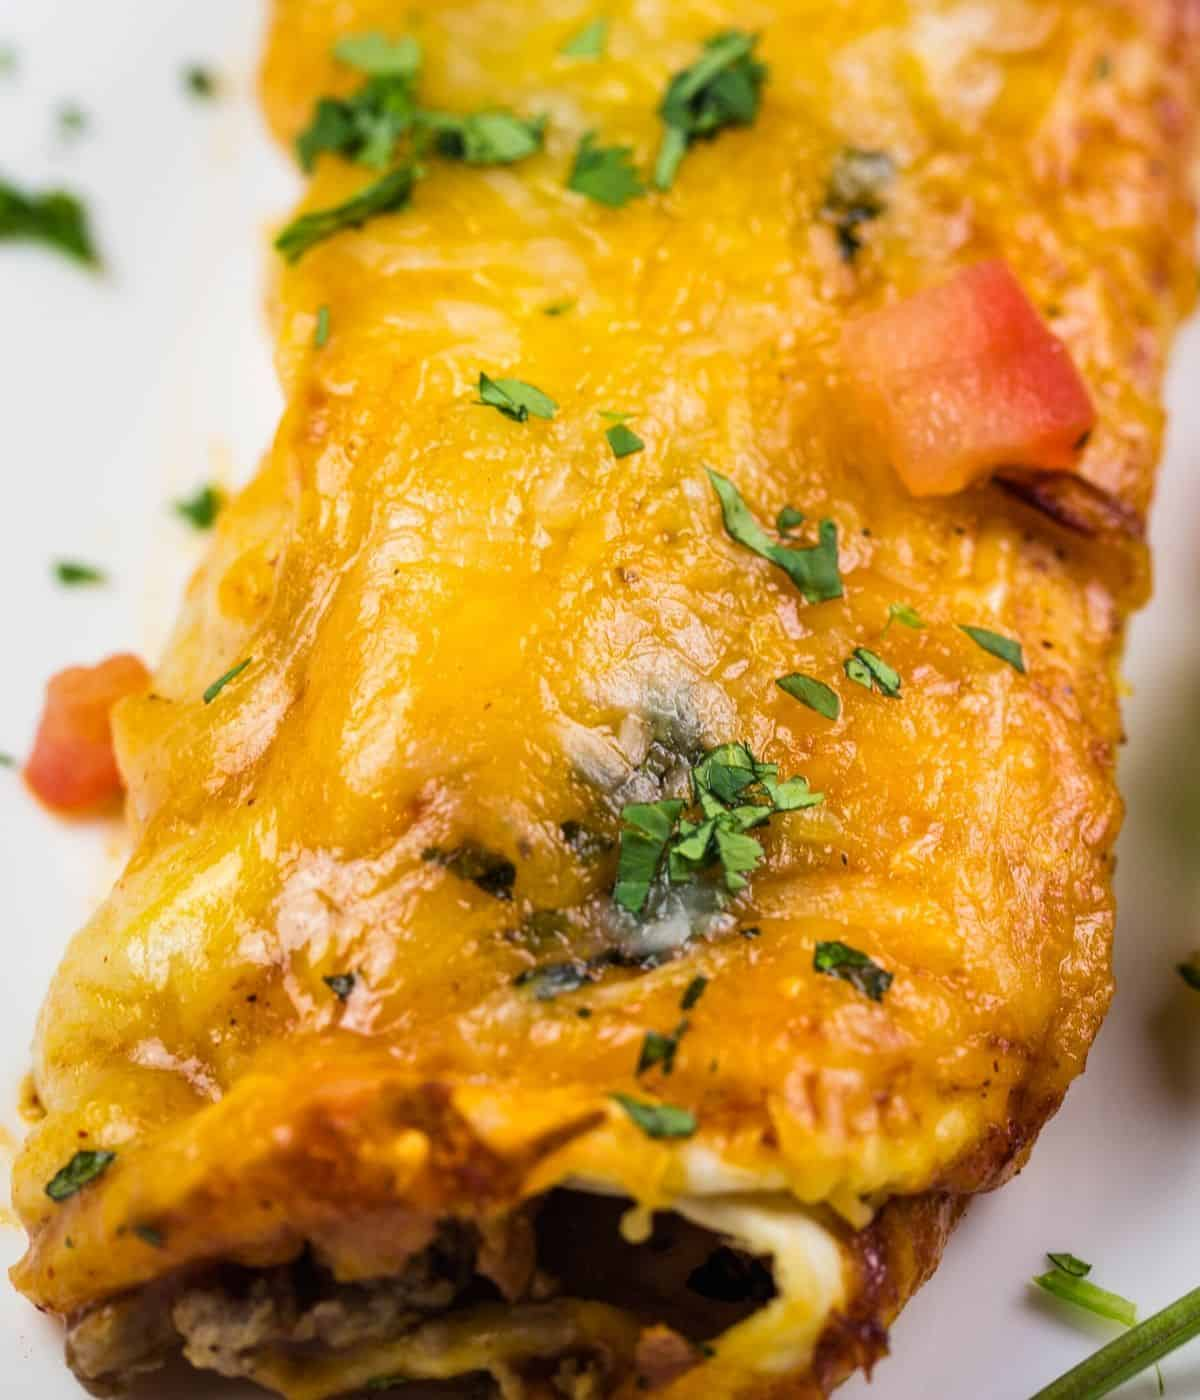 Cheesy beef enchilada topped with cheese, tomatoes, and fresh cilantro